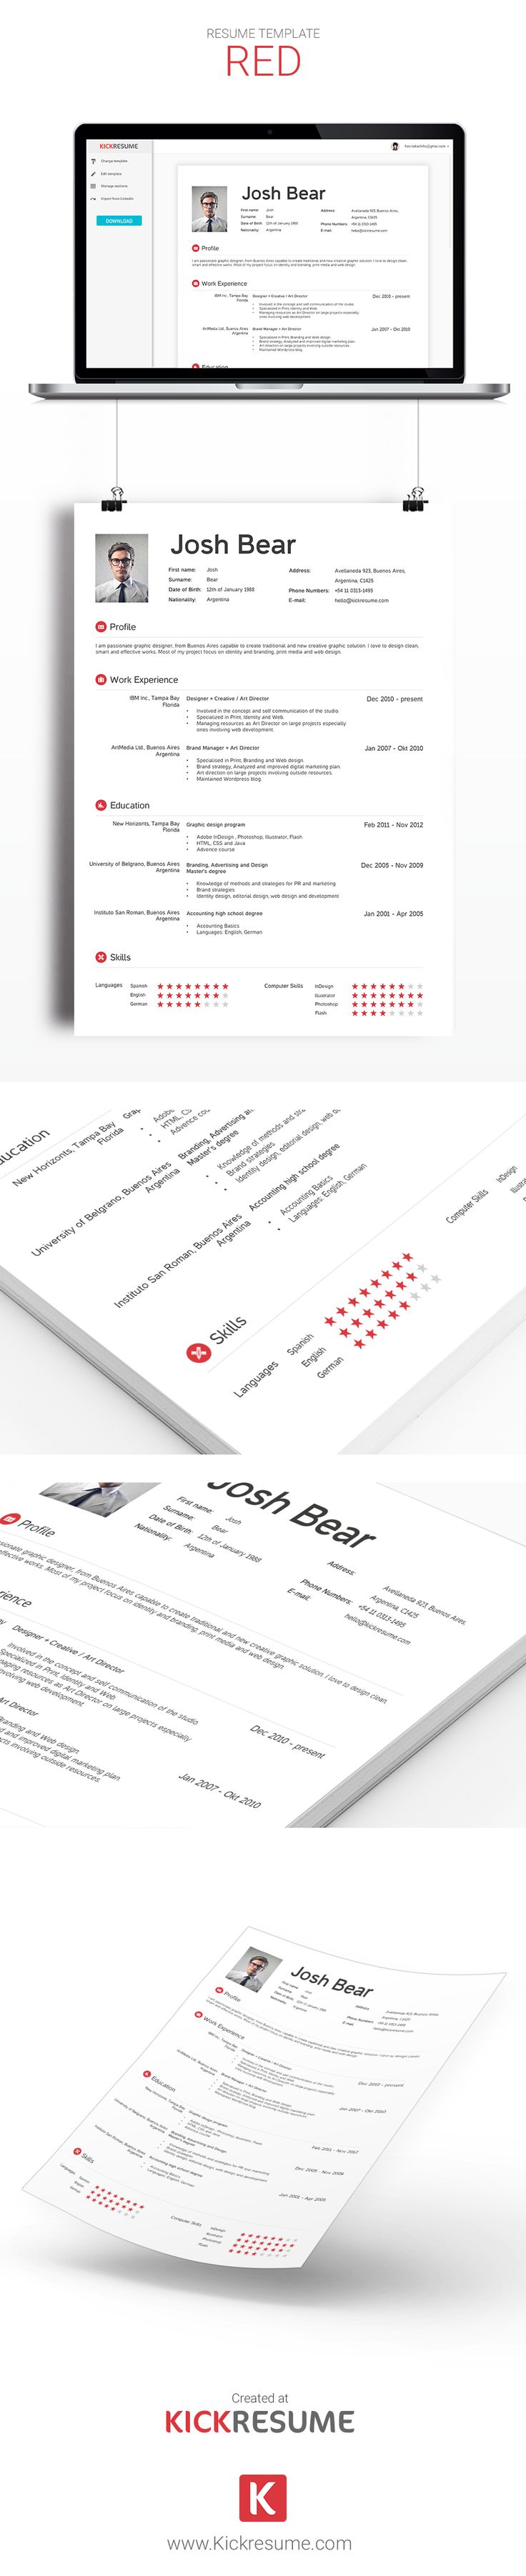 best images about kickresume templates gallery resume samples create beautiful resumes in minutes kickresume sample resume template resume design creative resume resume online